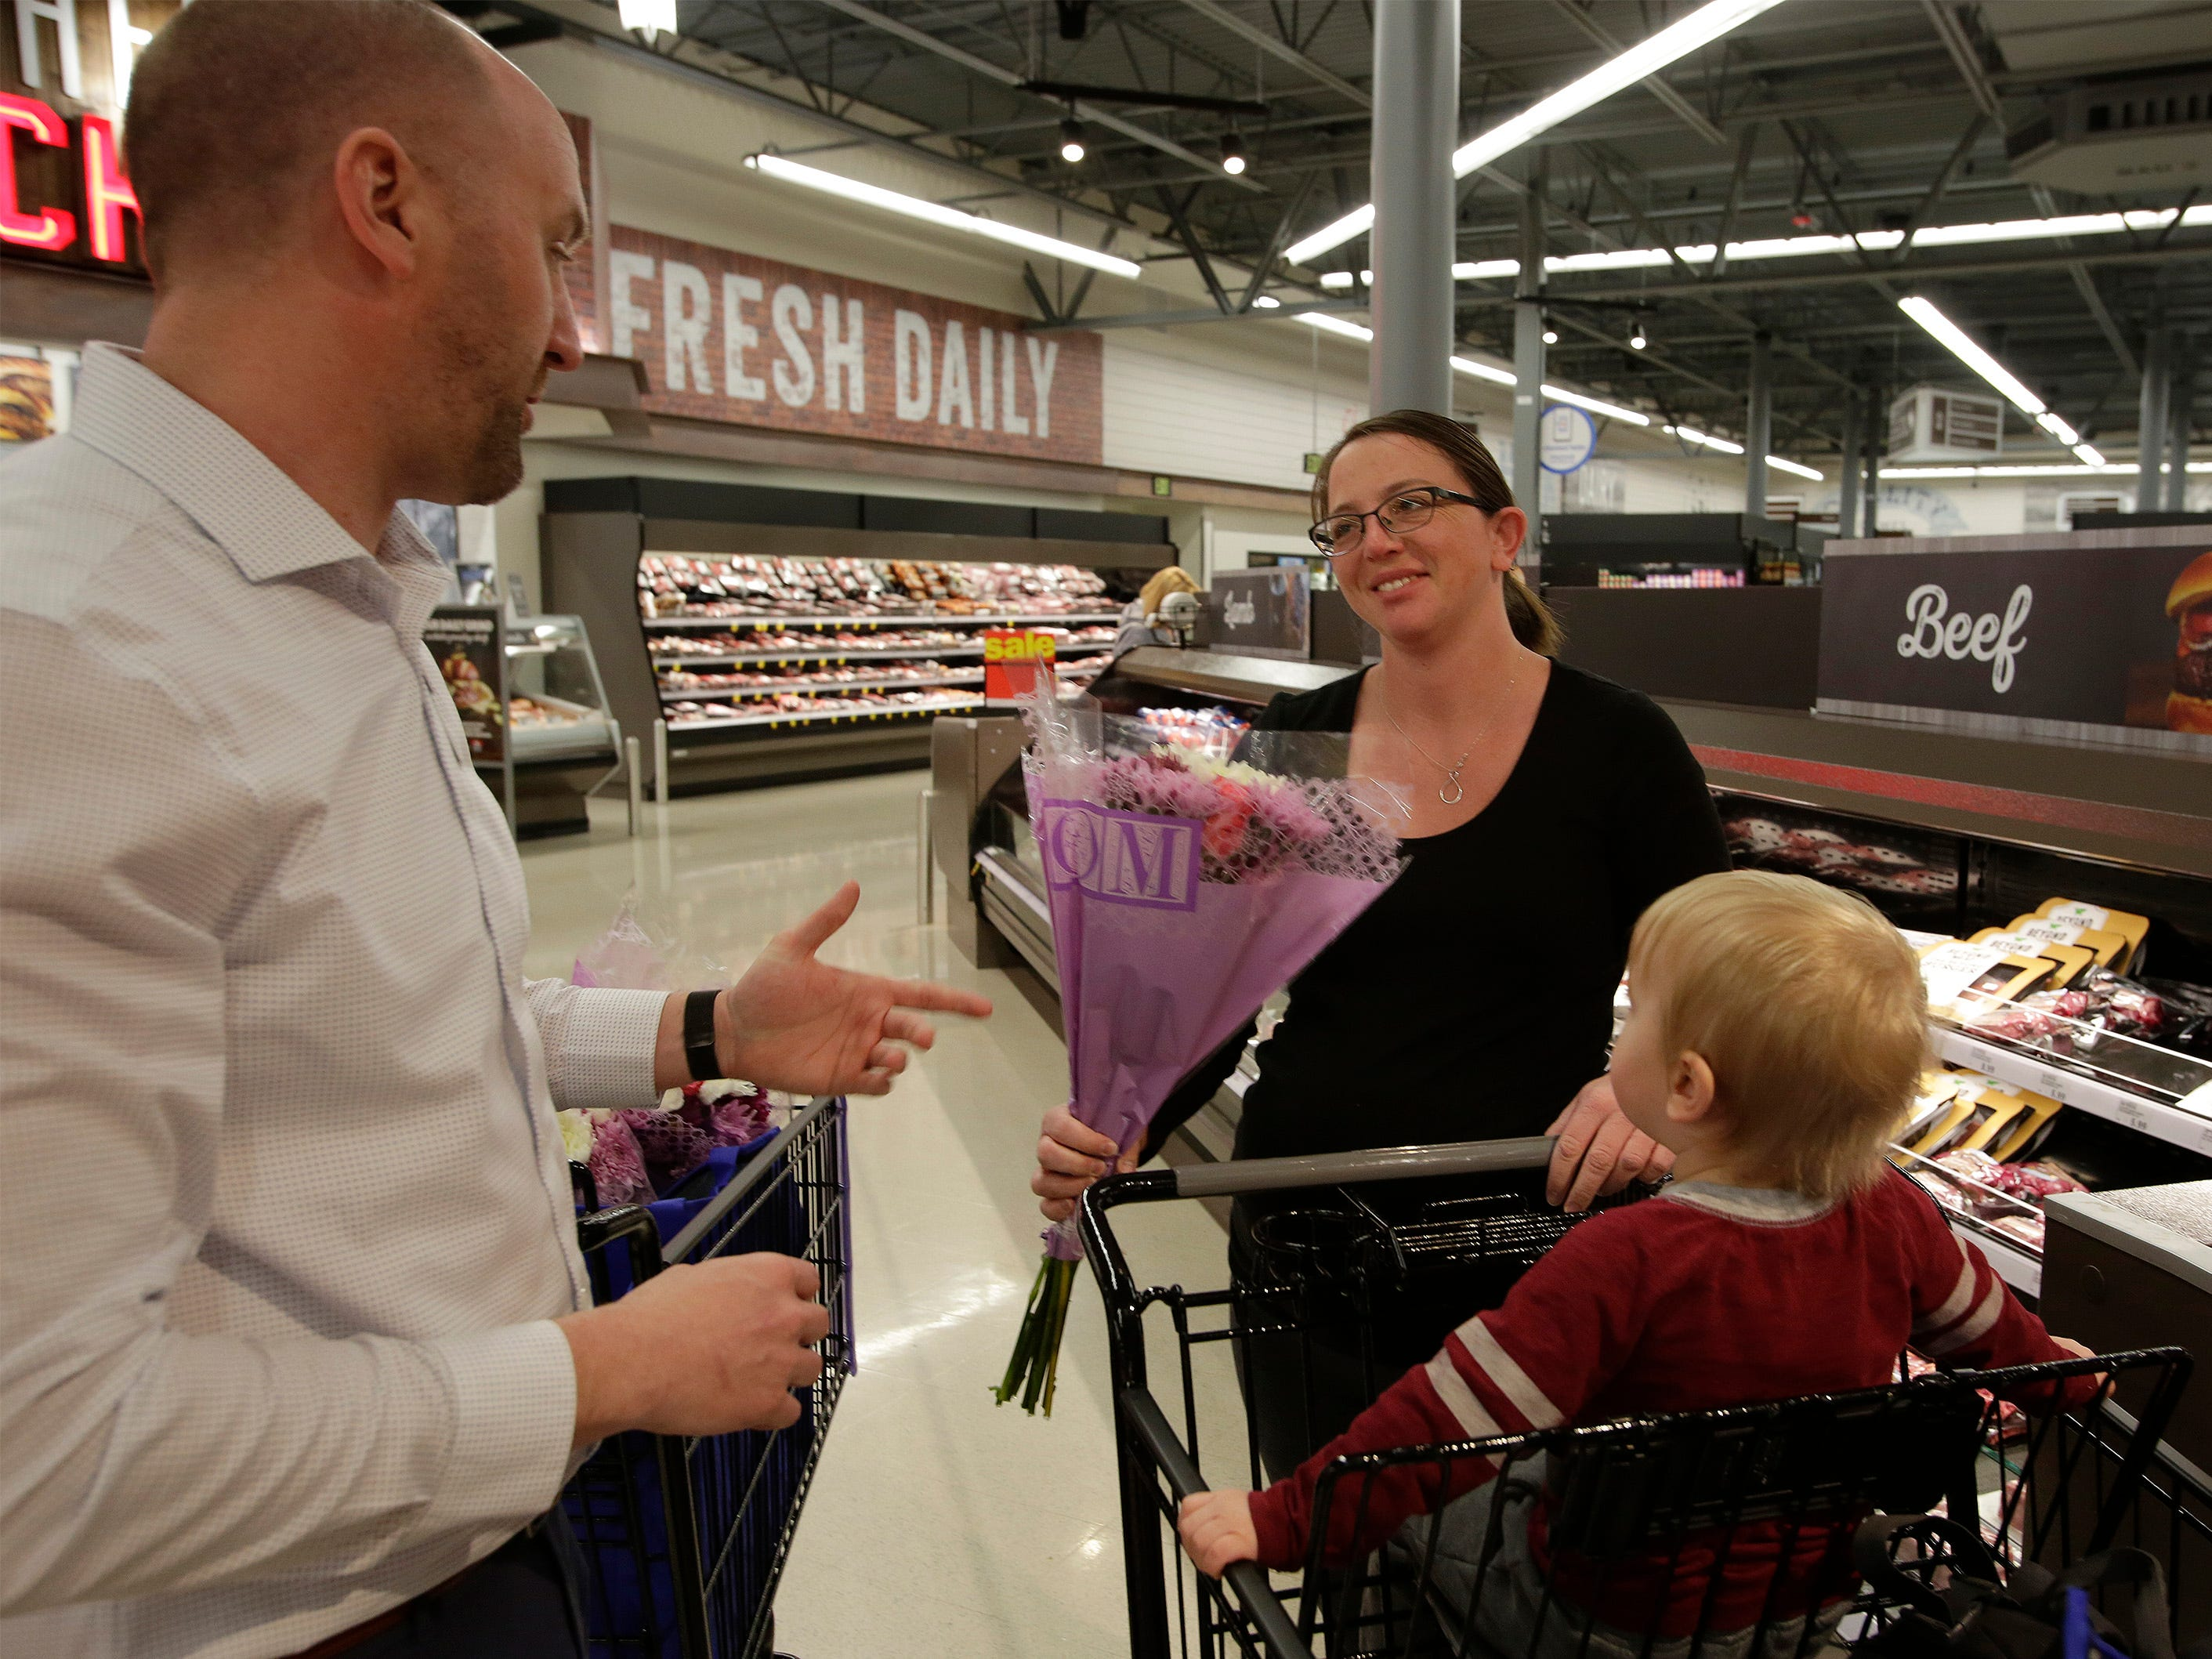 Tasha Peterson of Howards Grove, Wis., center, along with her son Lucas, 2, are presented flowers and gifts by Meijer Store Director Jeff  Kietzman, left, at Meijer, Saturday, May 11, 2019, in Sheboygan, Wis.